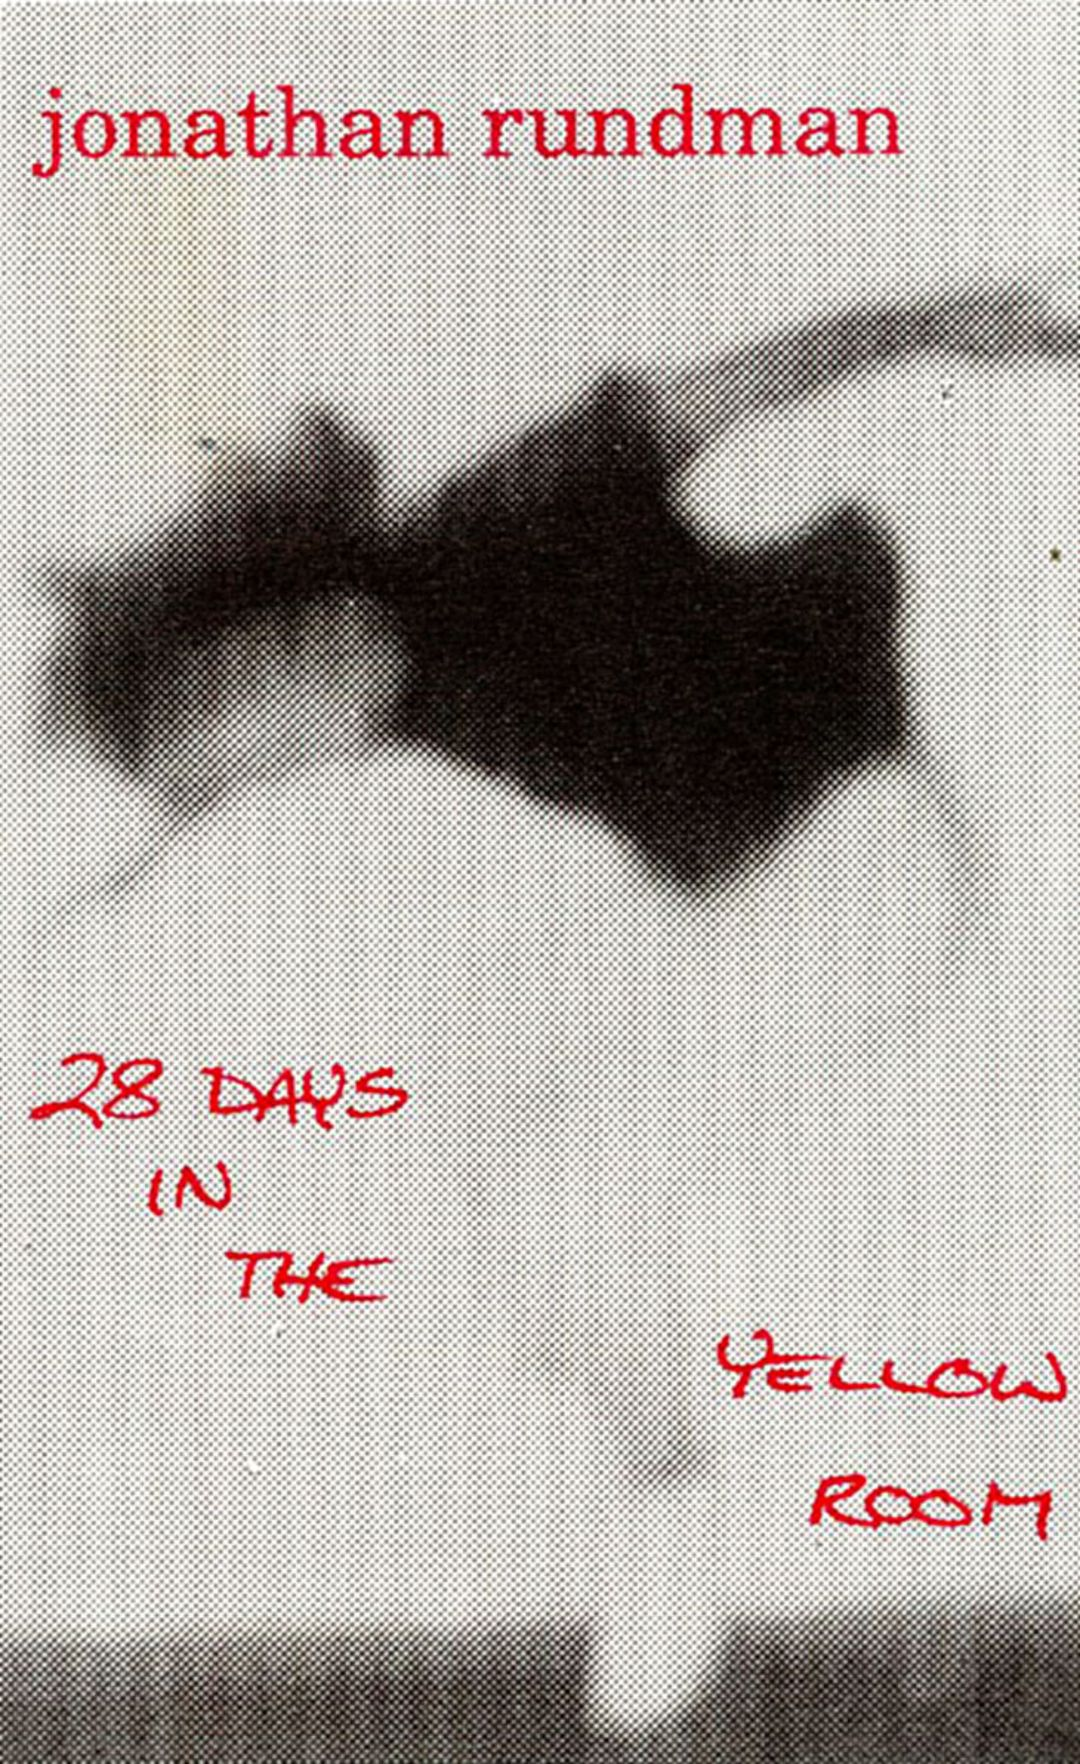 28 Days in the Yellow Room